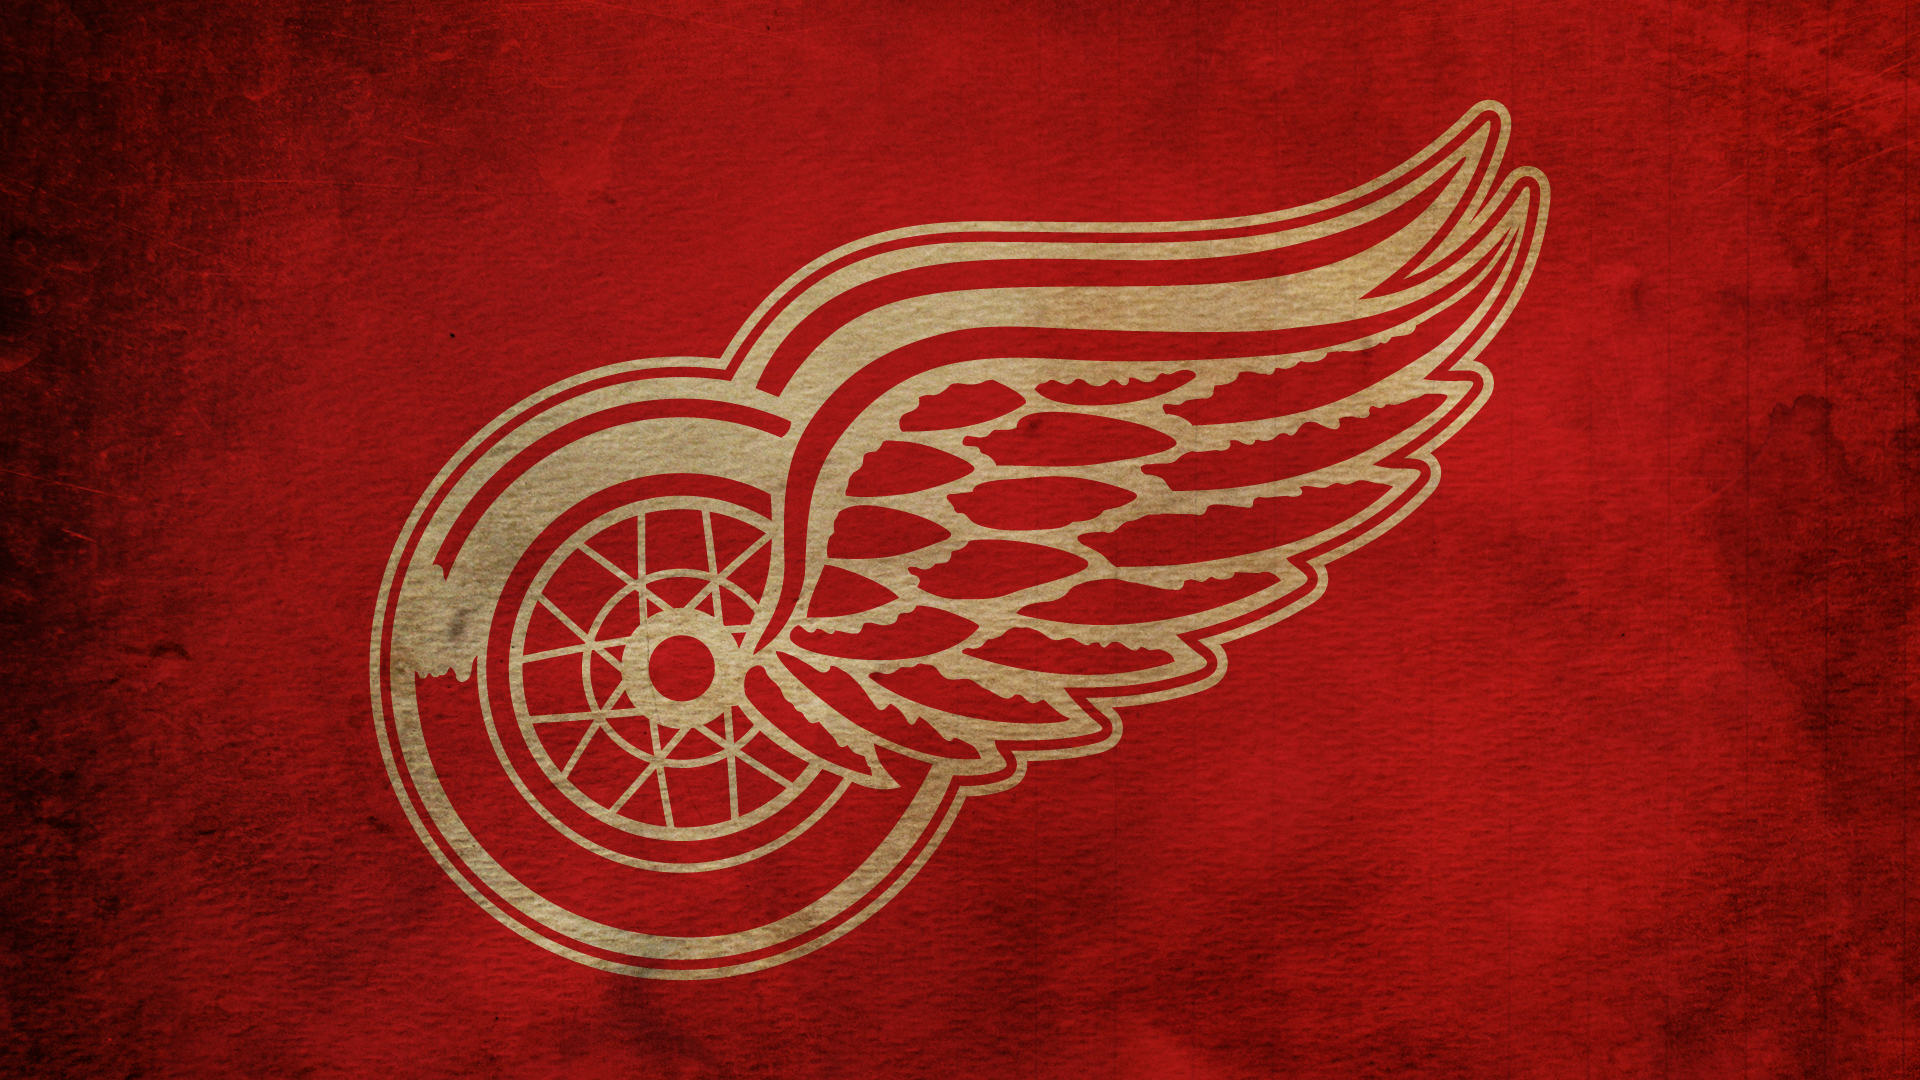 nhl team wallpaper share this awesome nhl hockey wallpaper on facebook 1920x1080